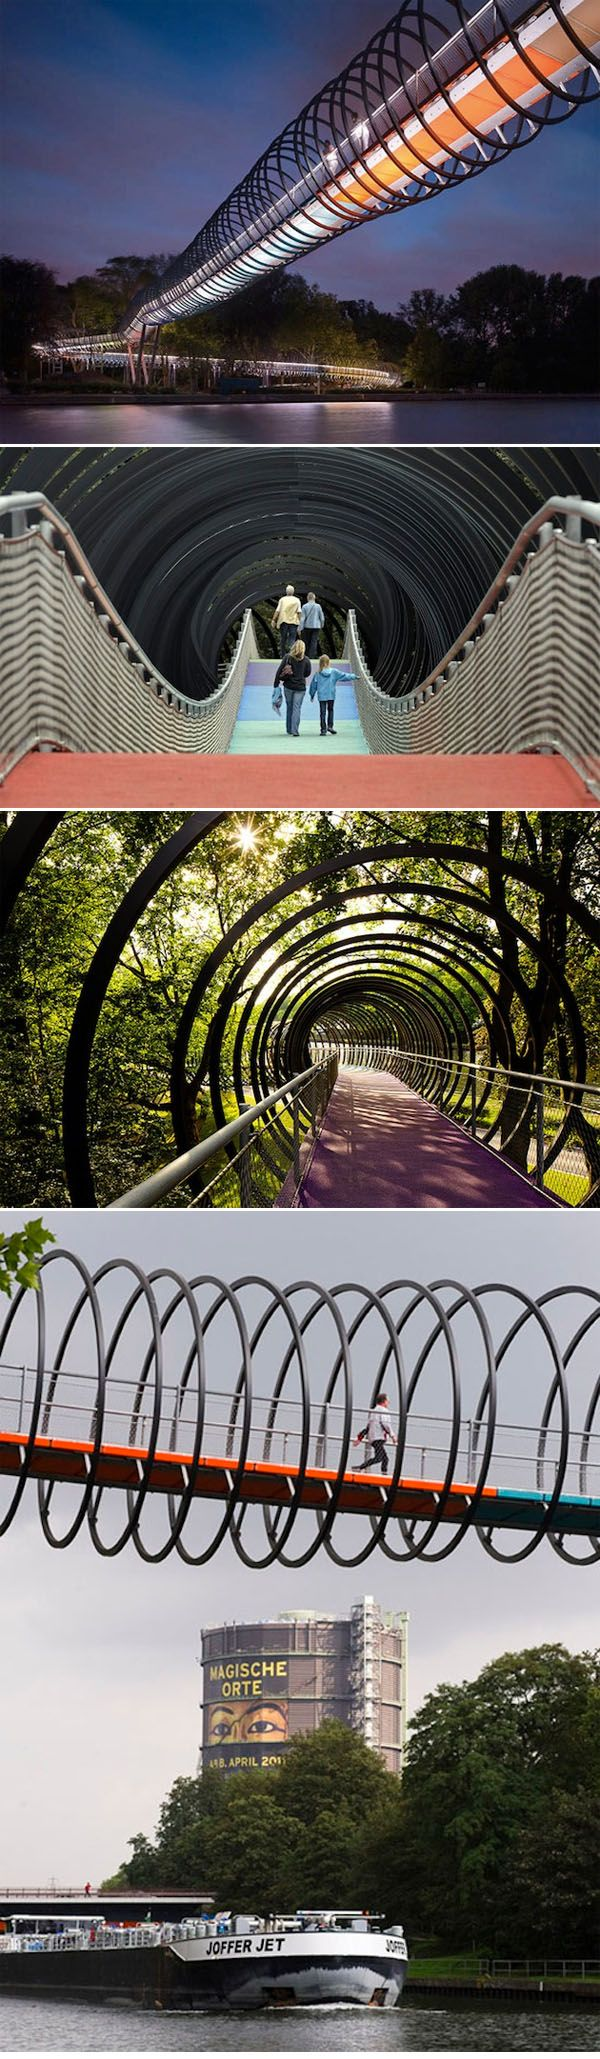 "Artist Tobias Rehberger is the creative behind Oberhausen, Germany's ""Slinky Springs To Fame"" bridge. After an intense collaboration with structural designers of Schlaich Bergermann and Partner, the 496 coil bridge came to fruition."